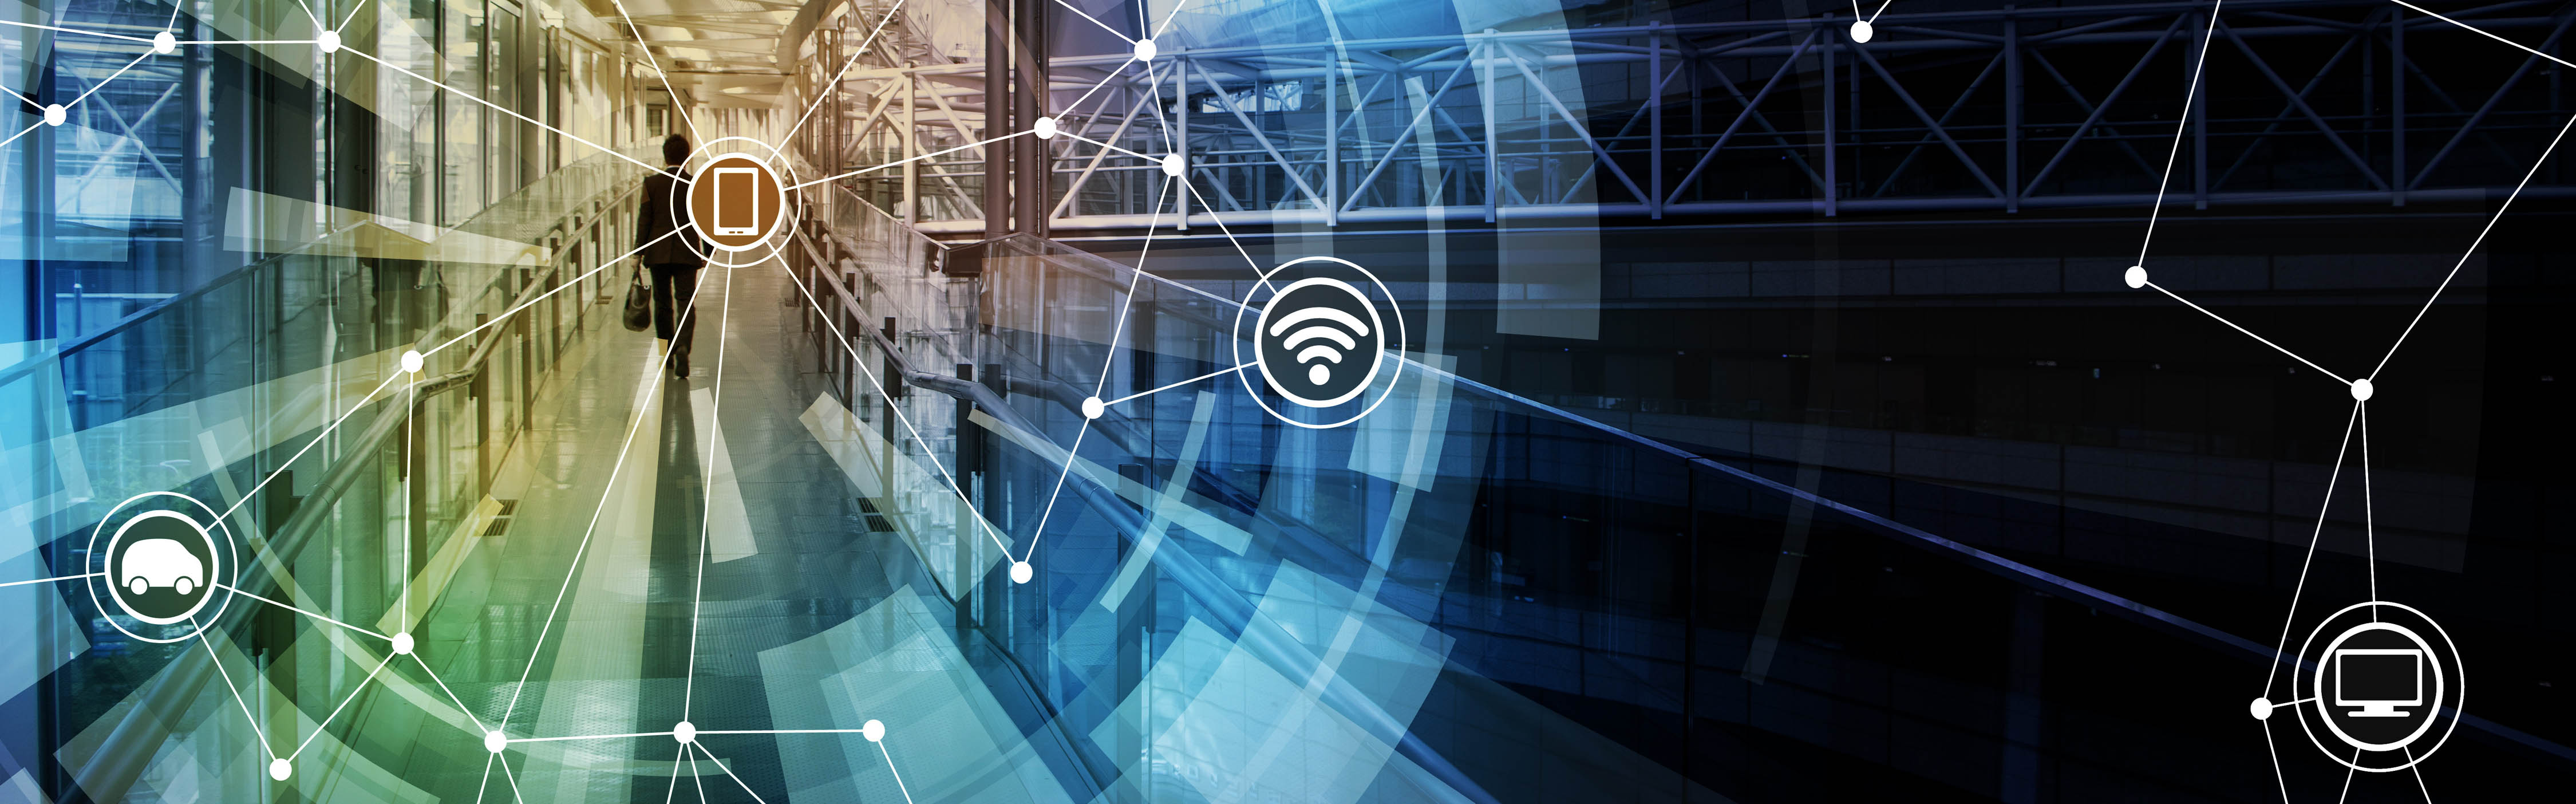 Communications Infrastructure for IoT